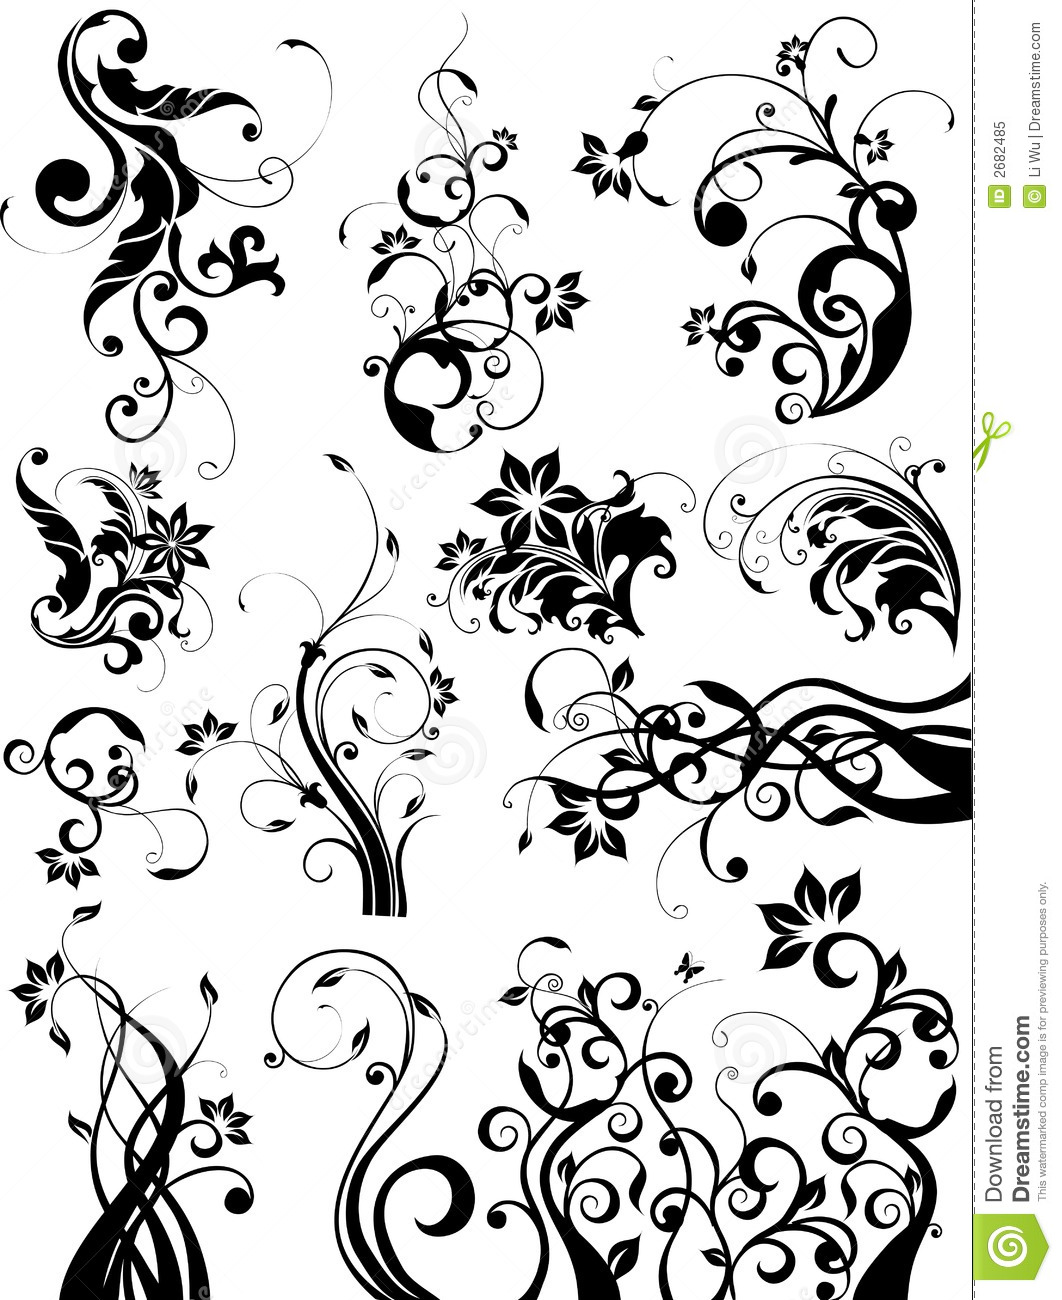 Design elements stock vector. Illustration of plant ...